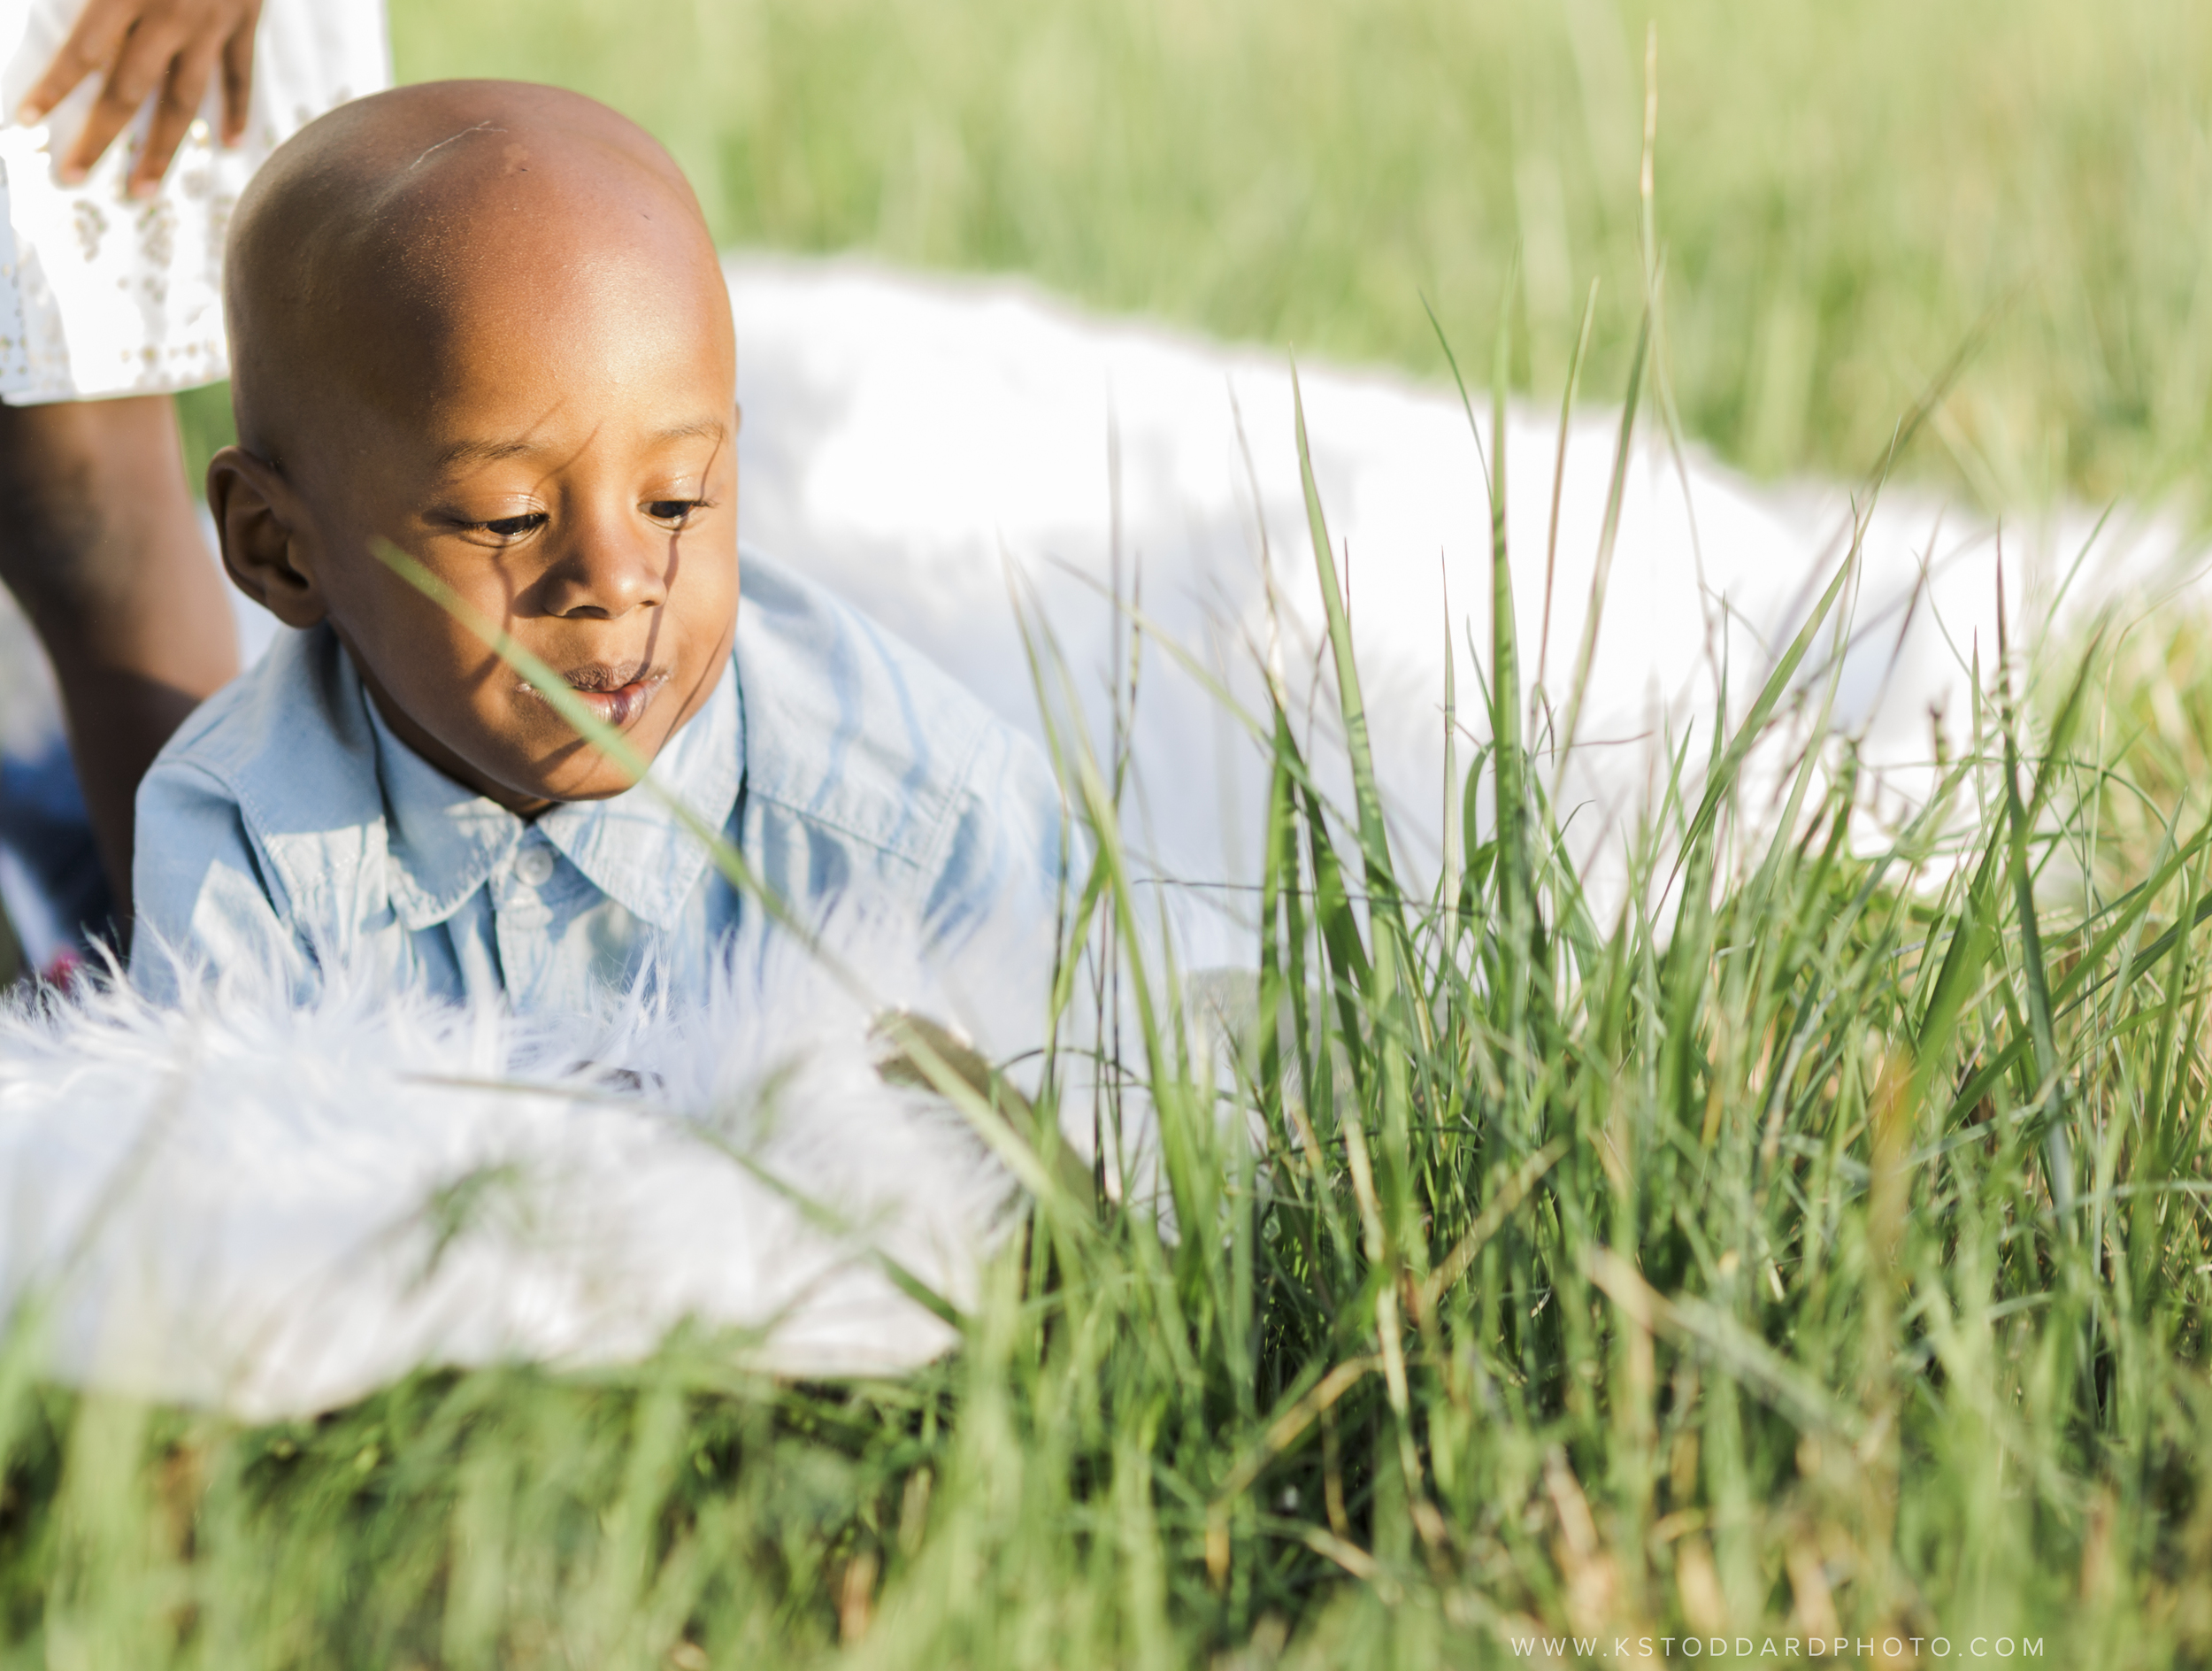 K'meil and Family - St. Jude Children's Research Hospital - Memphis - K. Stoddard Photography 019.jpg